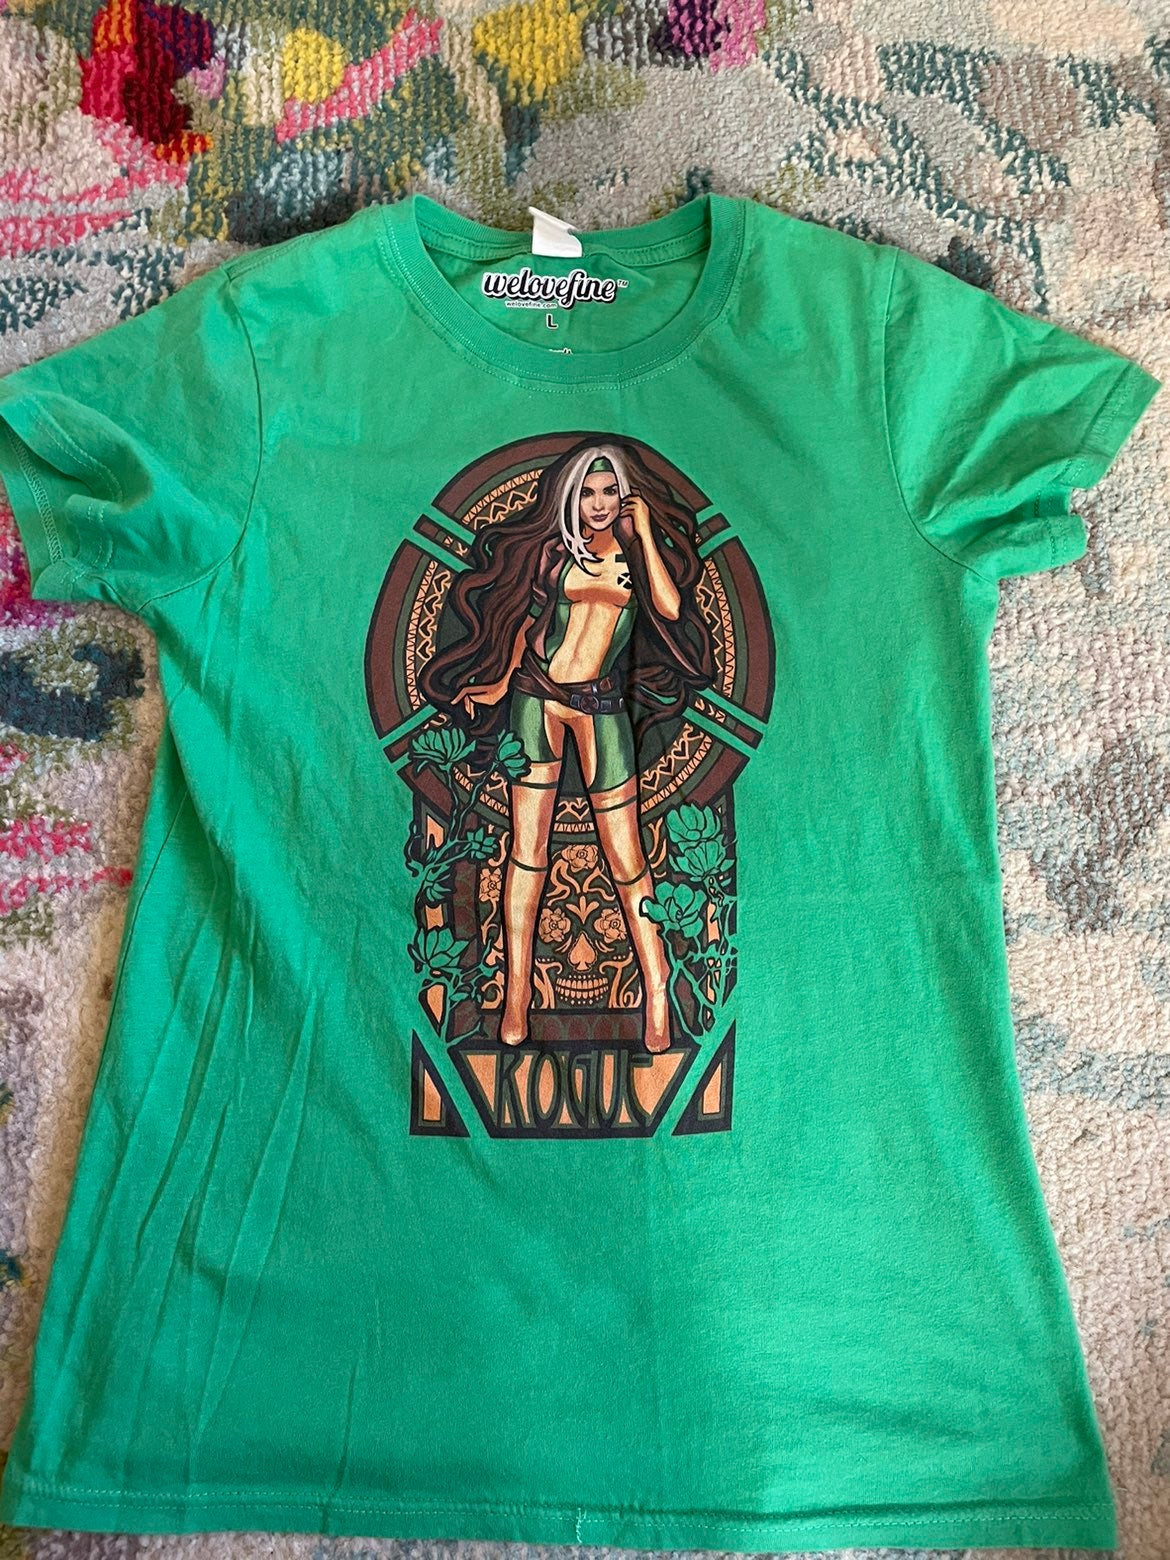 We Love Fine Rogue tee, size L